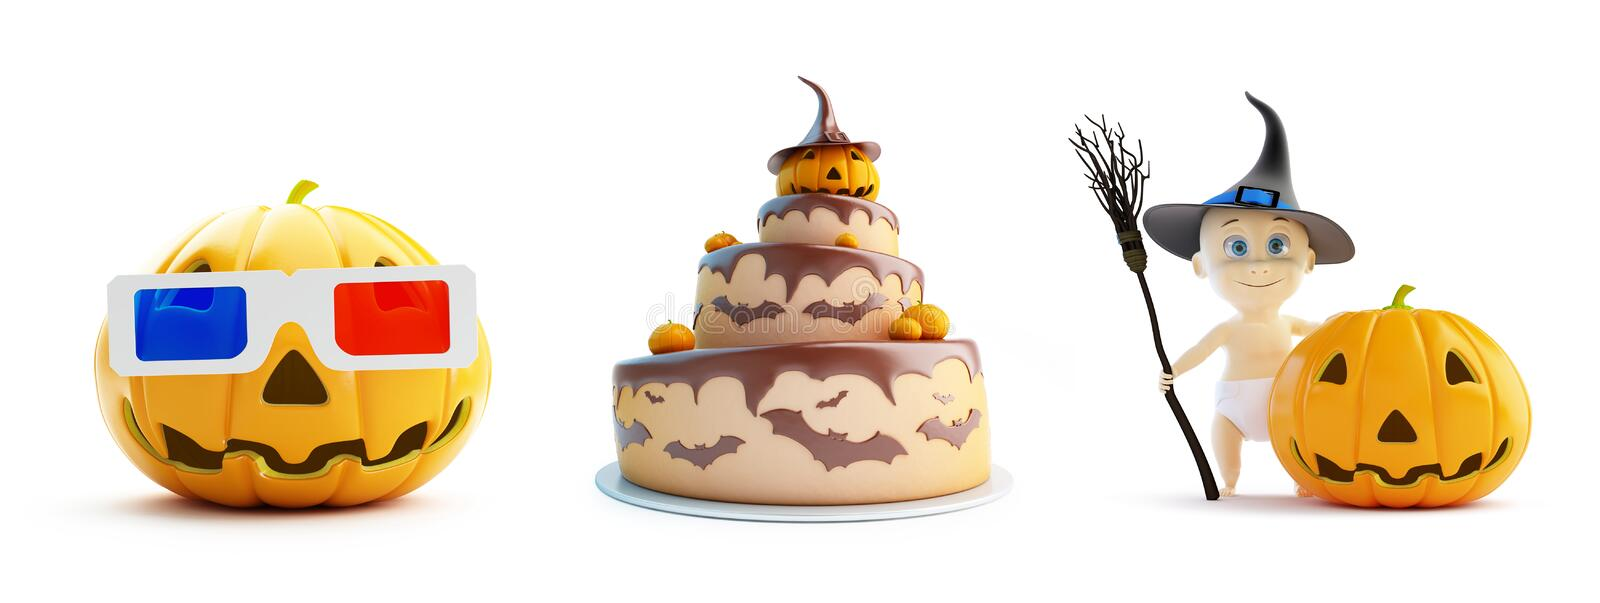 3d glasses, child in a Halloween costume cake on a white background 3D illustration, 3D rendering stock illustration